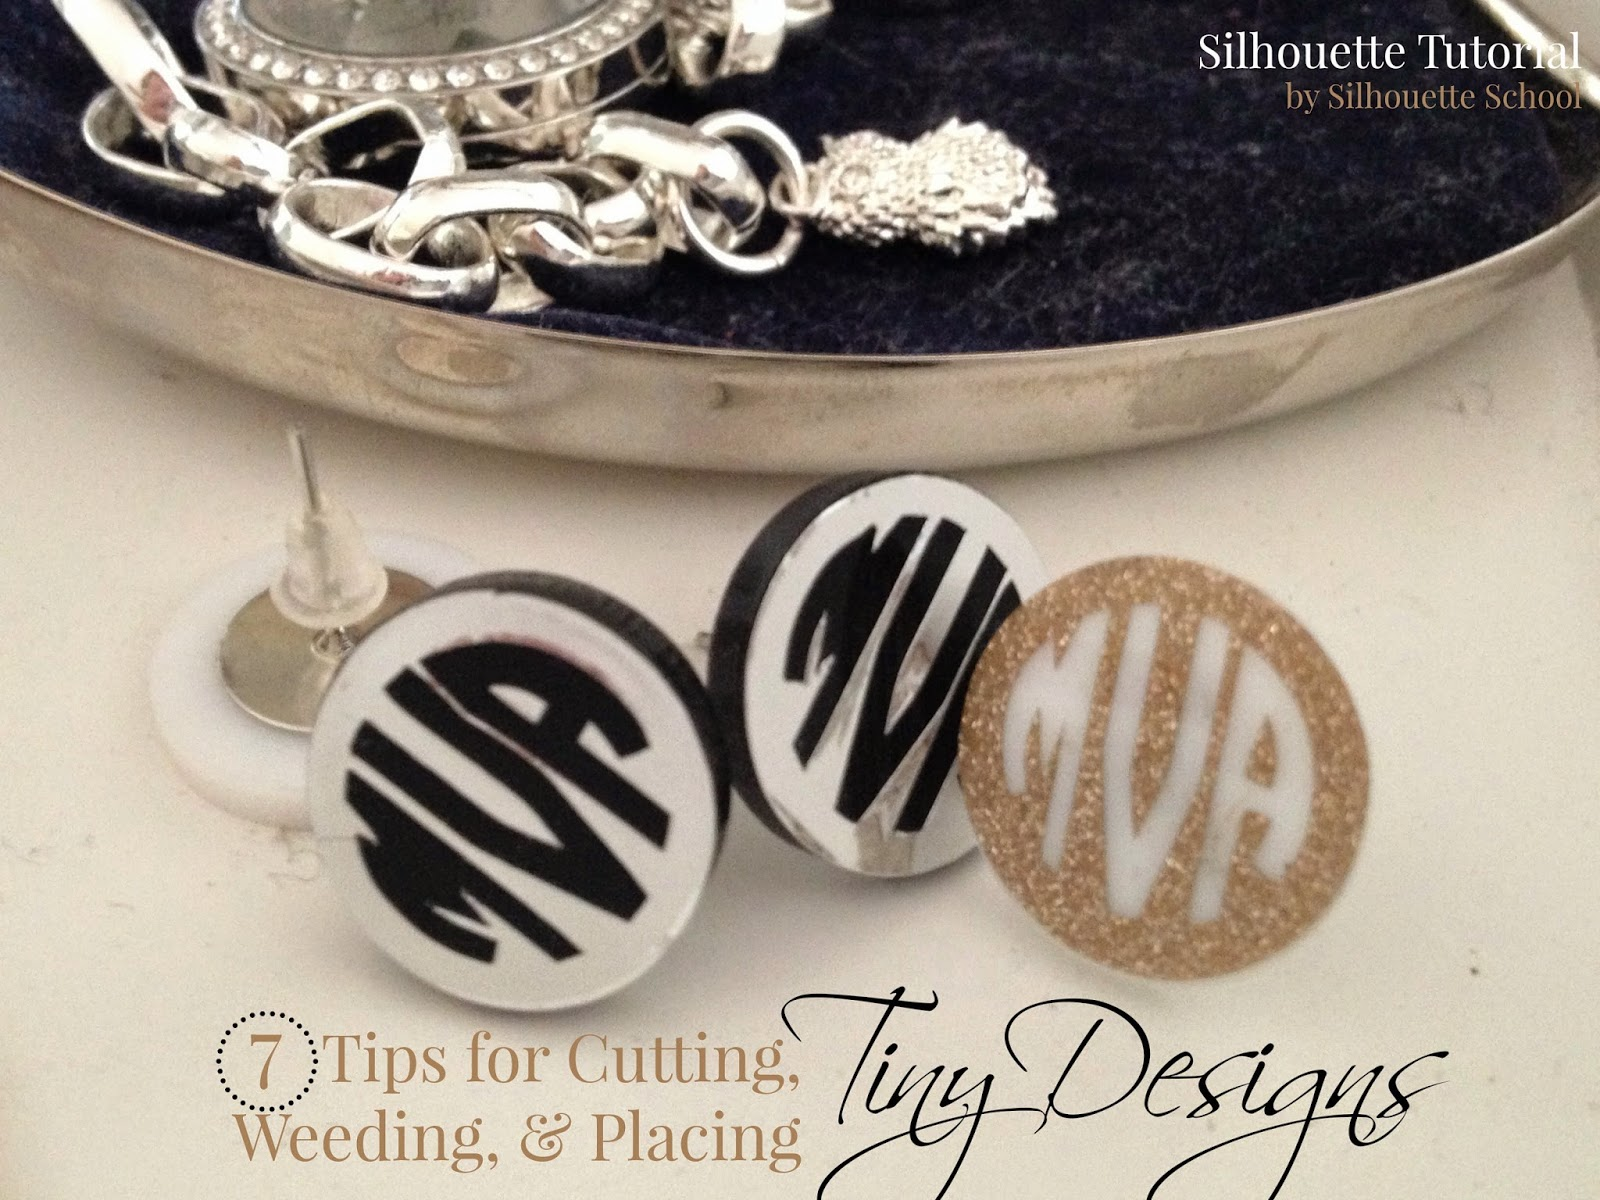 Silhouette designs, silhouette tip, cutting, weeding, silhouette 101, silhouette america blog